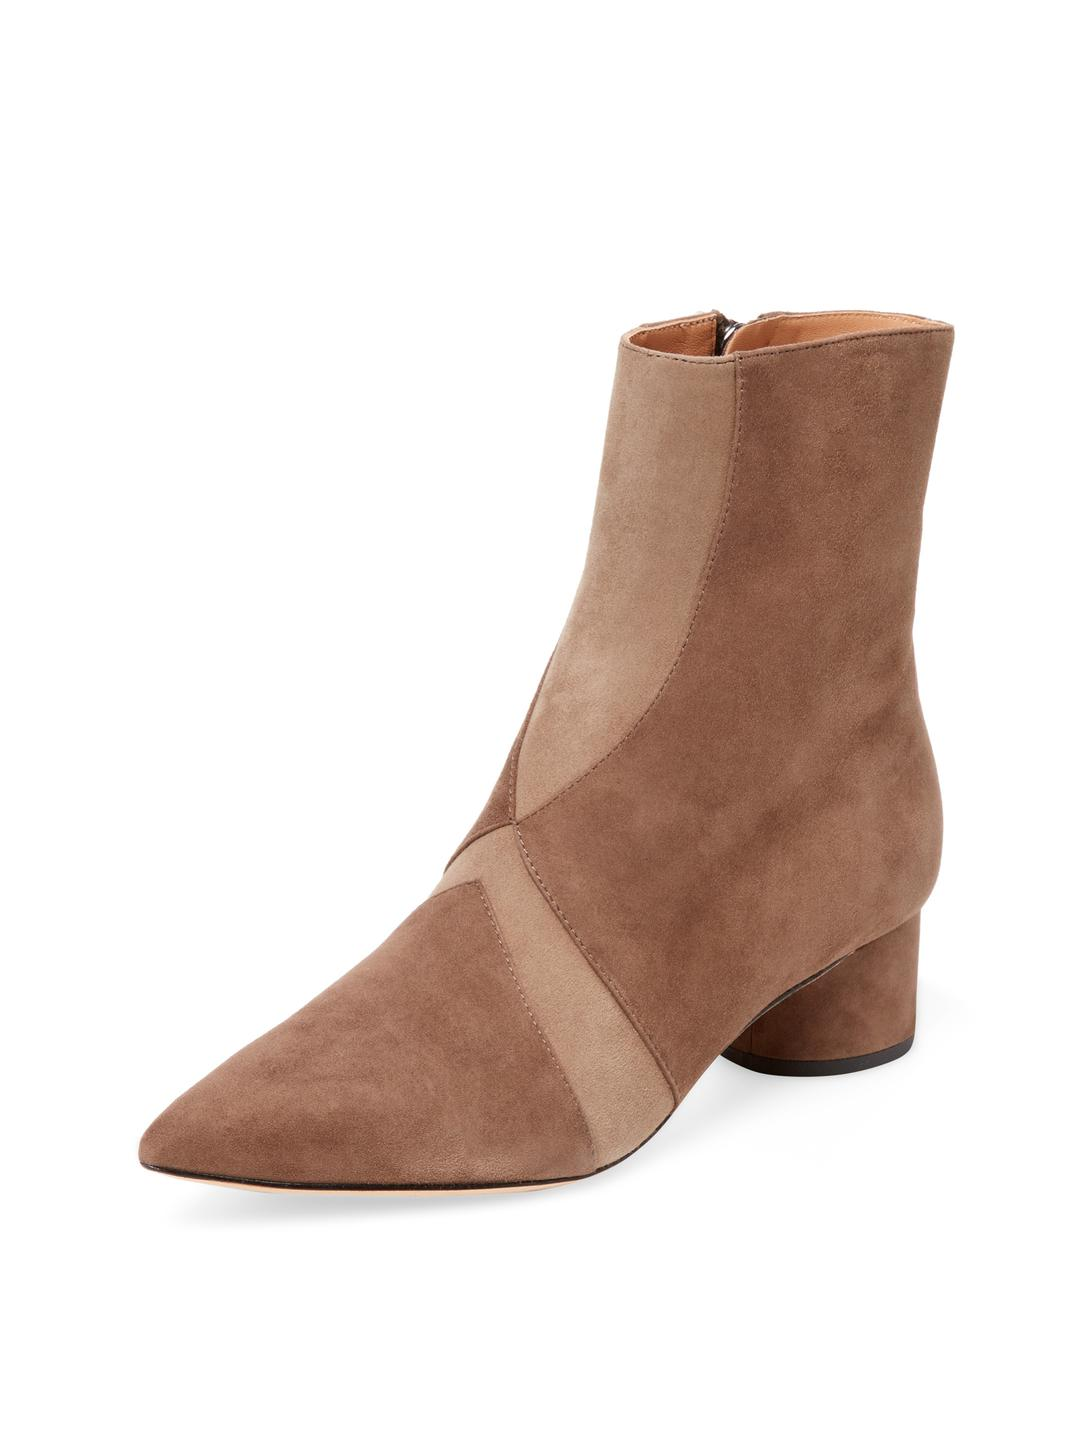 Sigerson Morrison Suede Pointed-Toe Booties free shipping order 2015 new DDJgAz